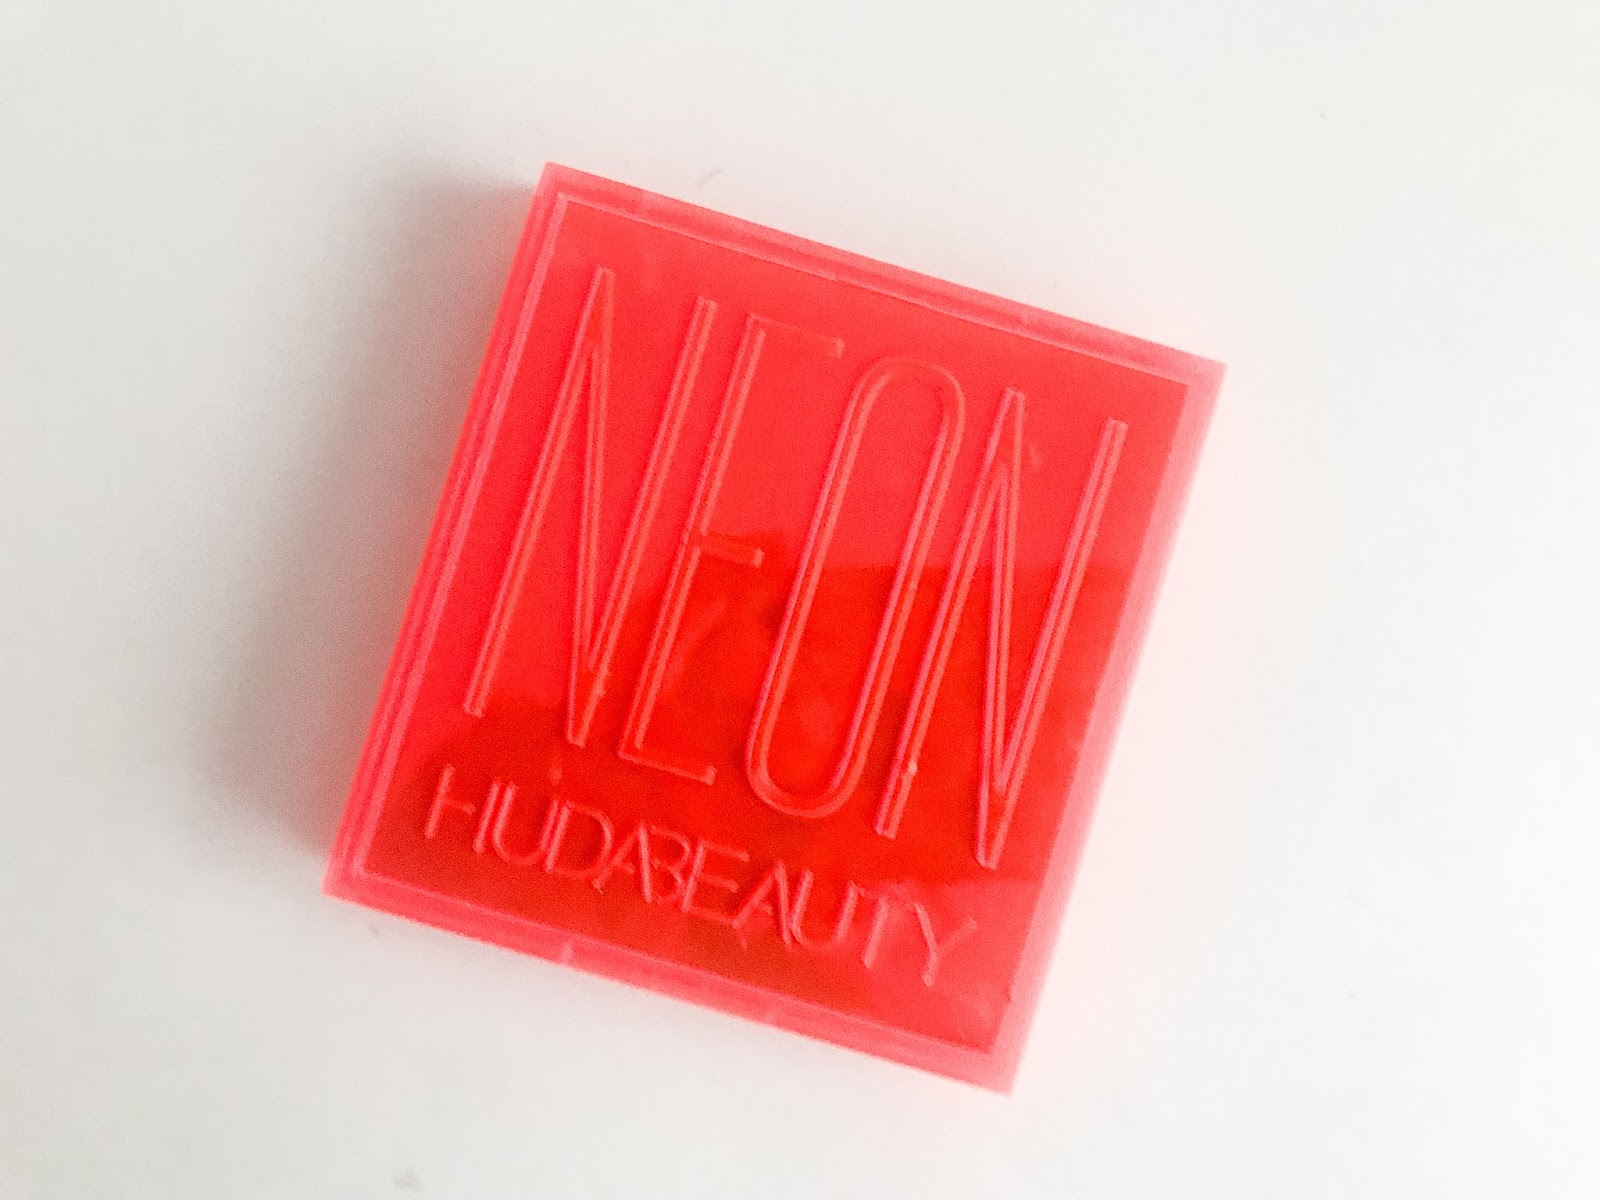 Huda Beauty Neon Orange Neon Obsessions Palette closed